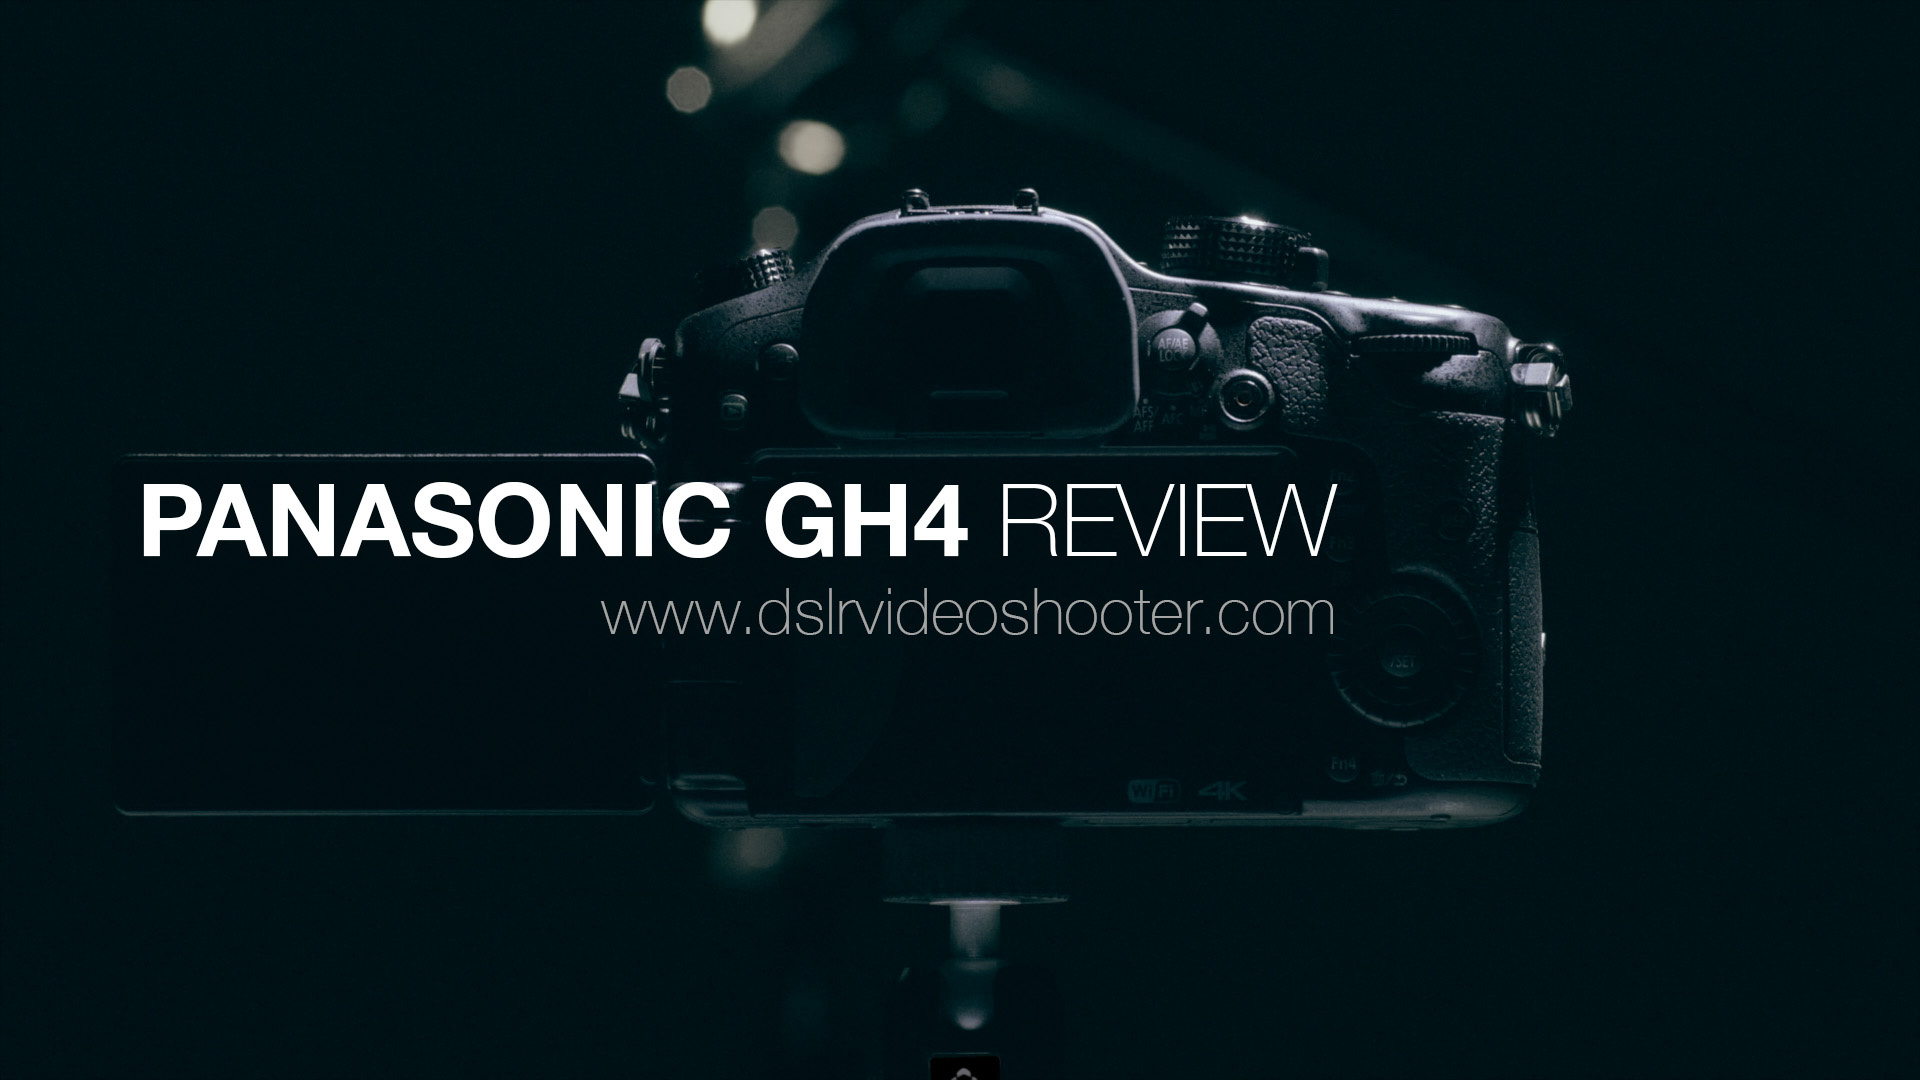 Panasonic GH4 Review